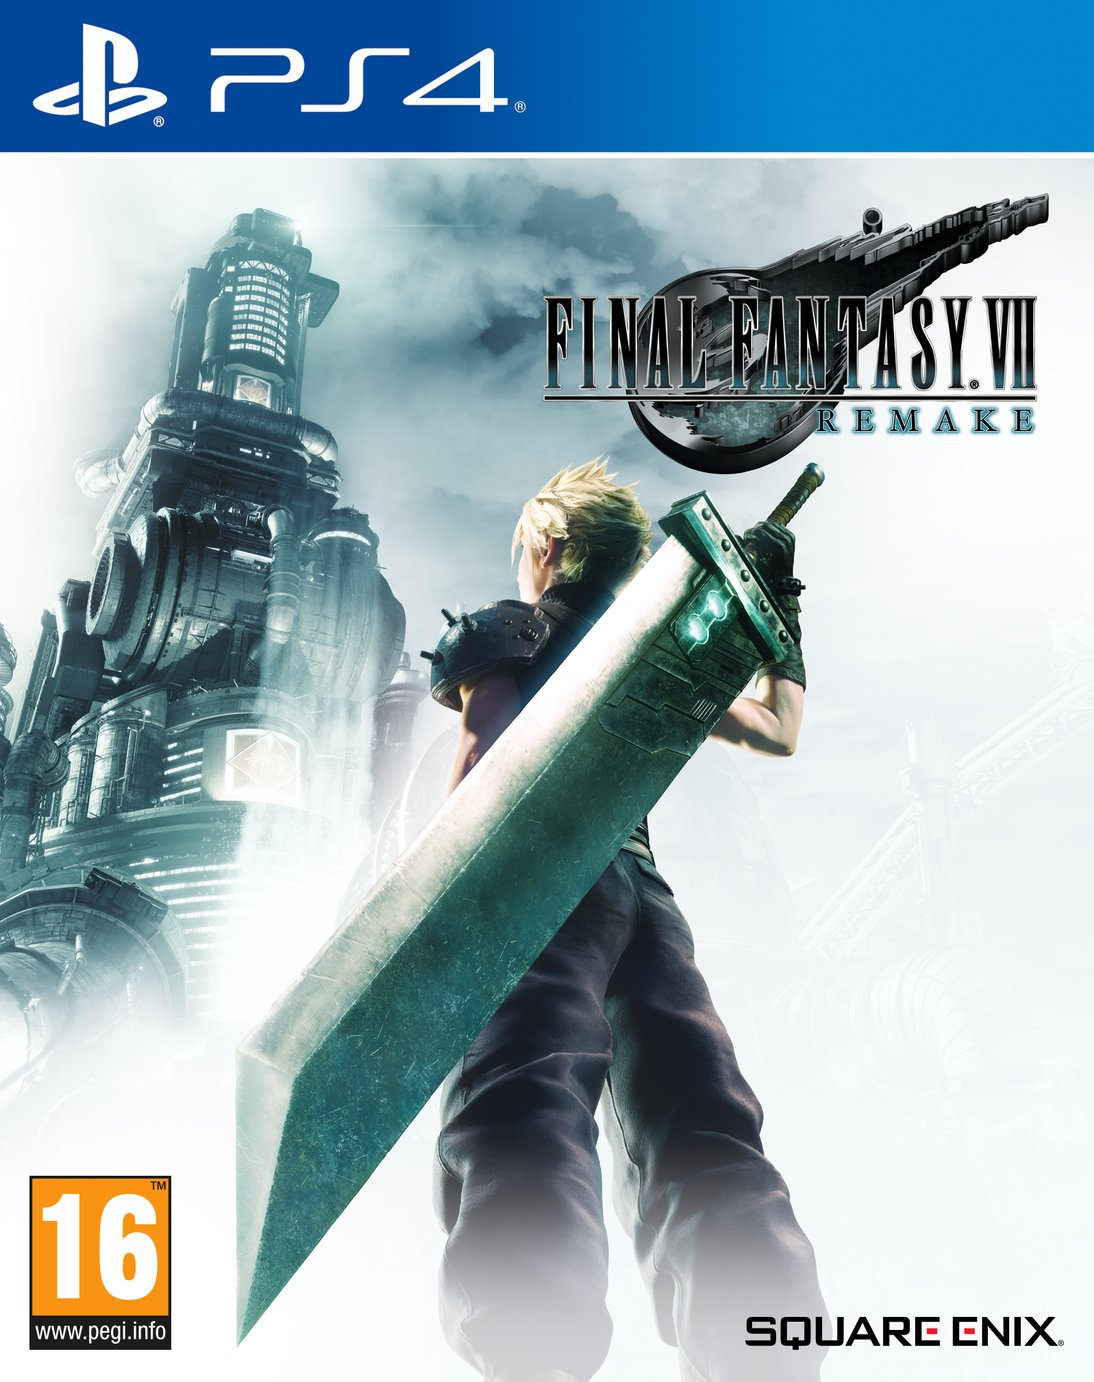 Final Fantasy VII Remake PS4 Pre-order Game